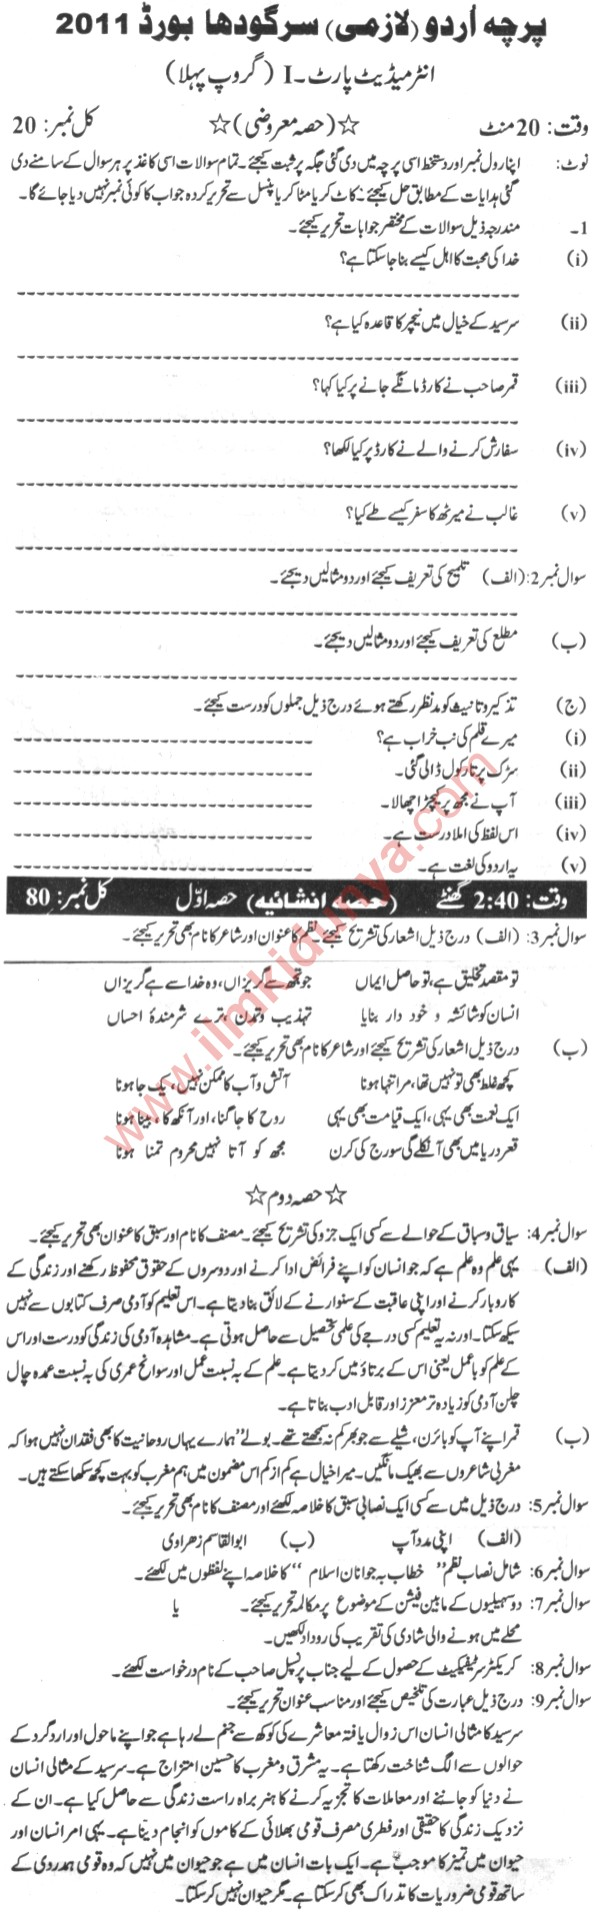 intermediate past papers sargodha board Past papers inter part 2 bise gujranwala you can get bise gujranwala board inter part 2 past papers of all subjects the board of intermediate and secondary education gujranwala is a governmental body responsible for examining intermediate.